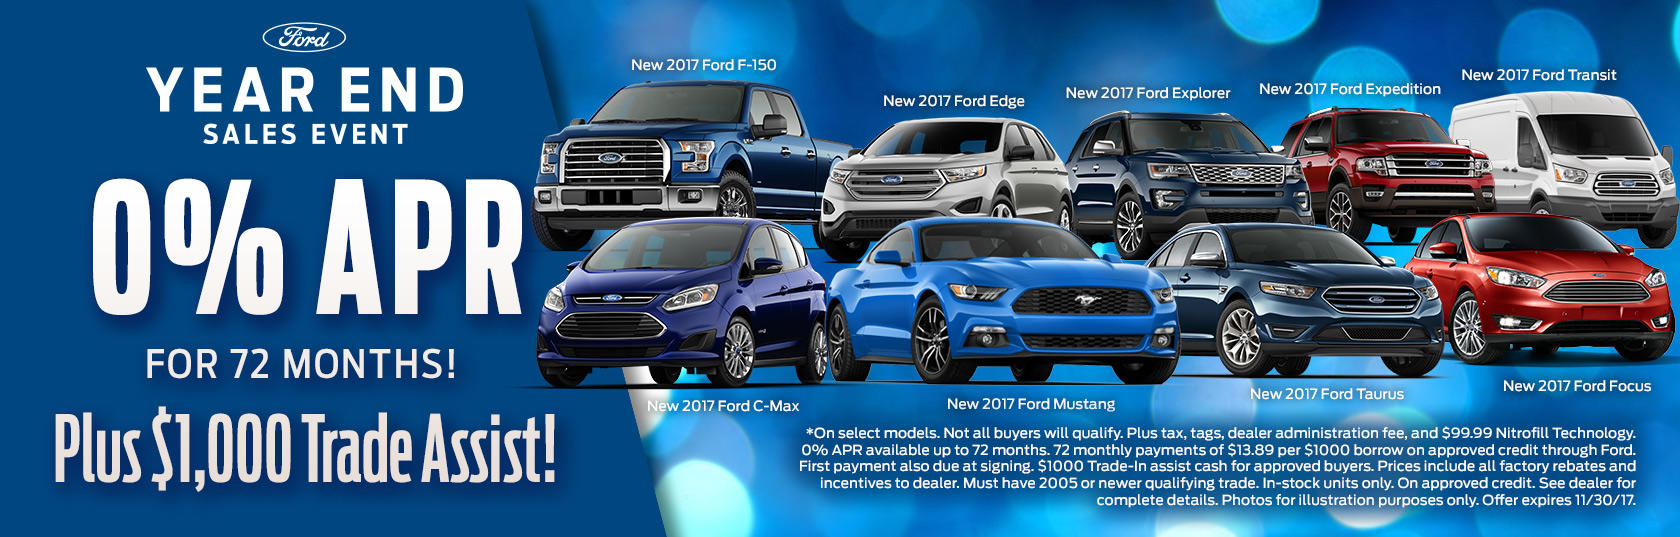 Used car dealer in concord nc serving charlotte gastonia html autos - Mooresville Ford North Carolina Ford Dealership Serving Charlotte Salisbury Nc